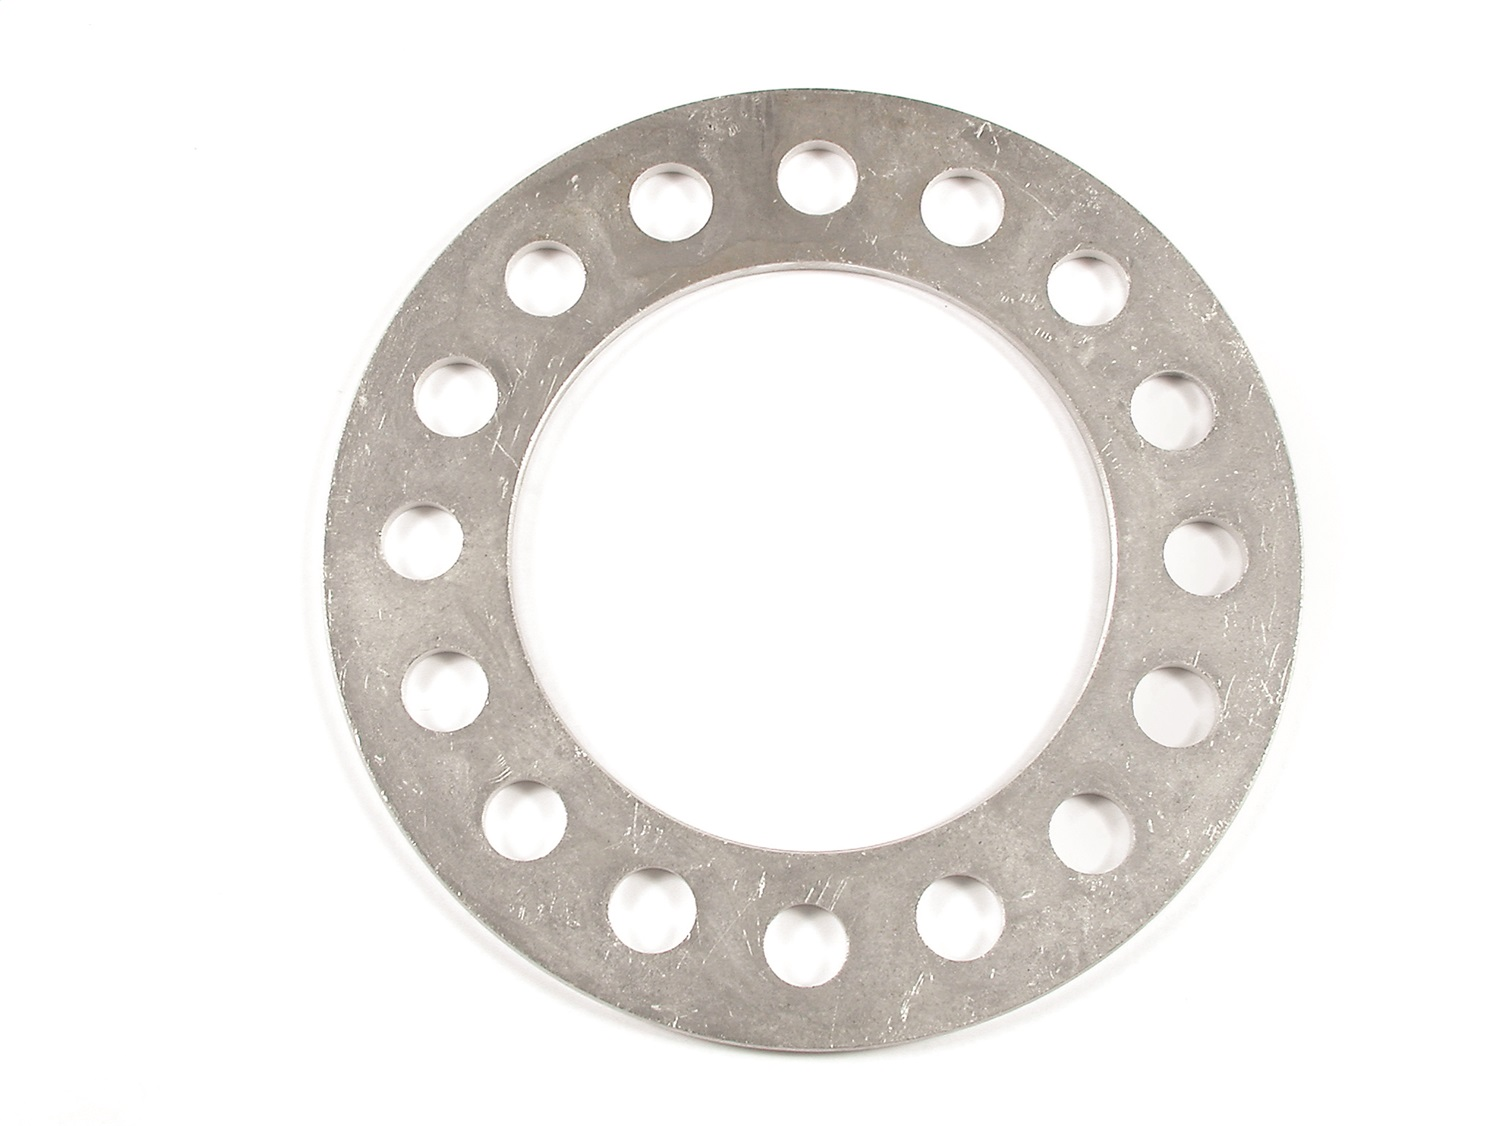 Mr Gasket 2376 Wheel Spacers